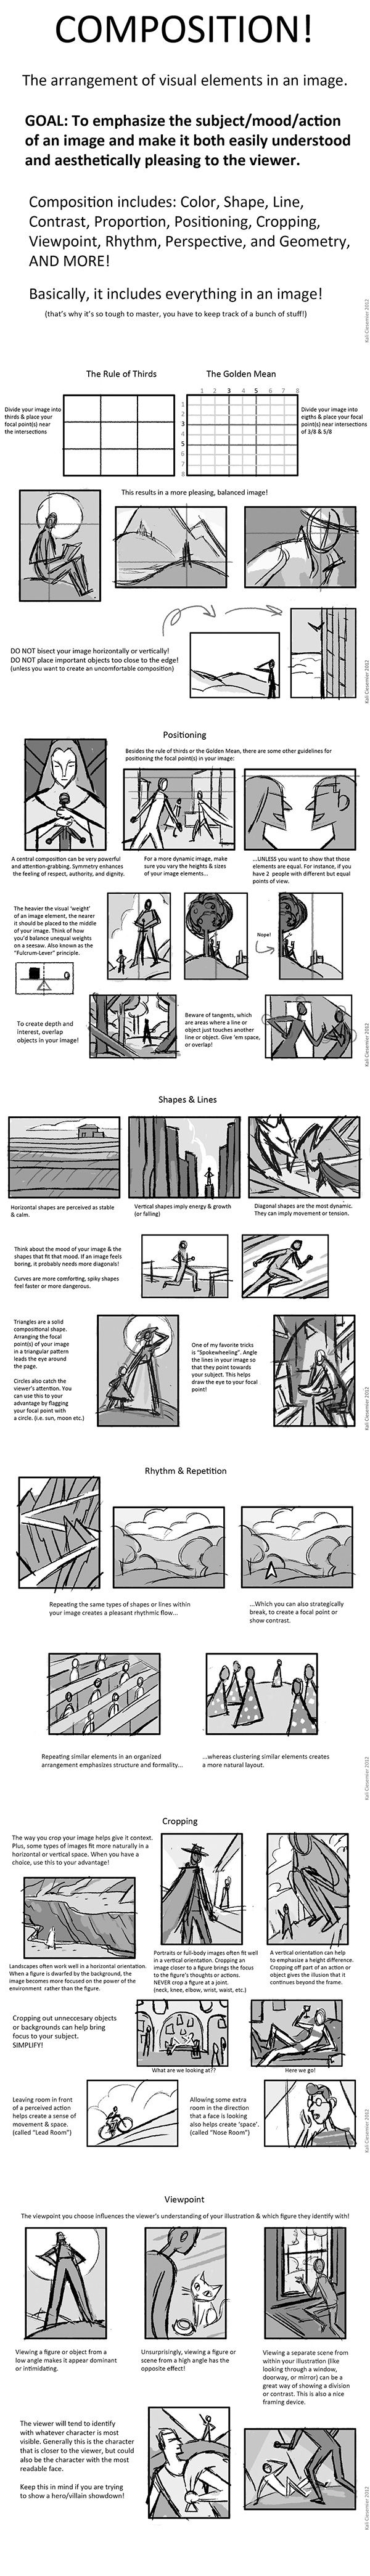 Great info on Composition